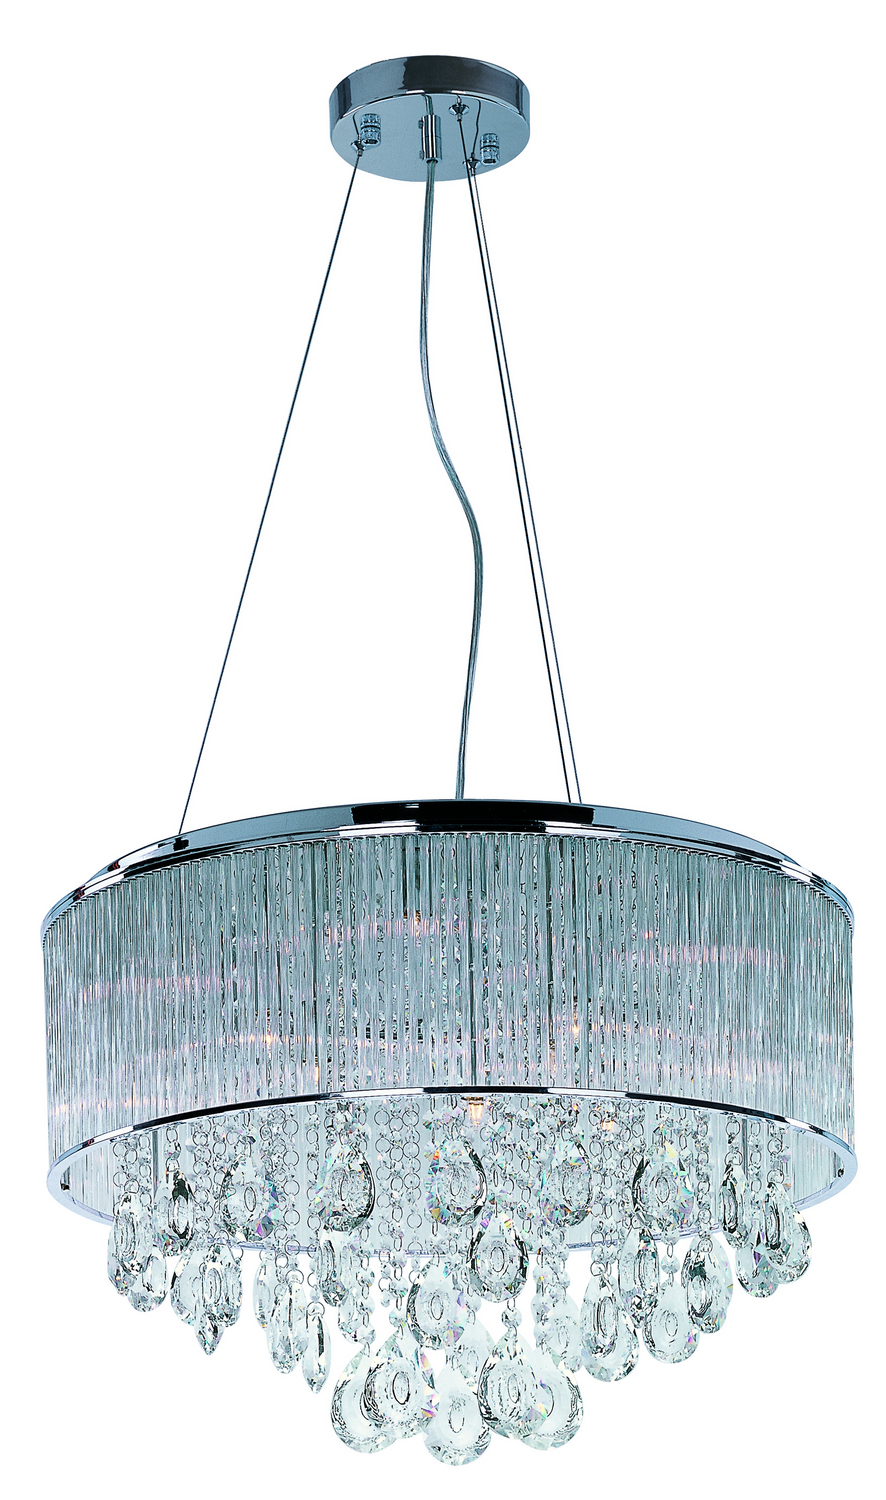 15 Light Pendant from the Gala collection by ET2 E22296 18PC